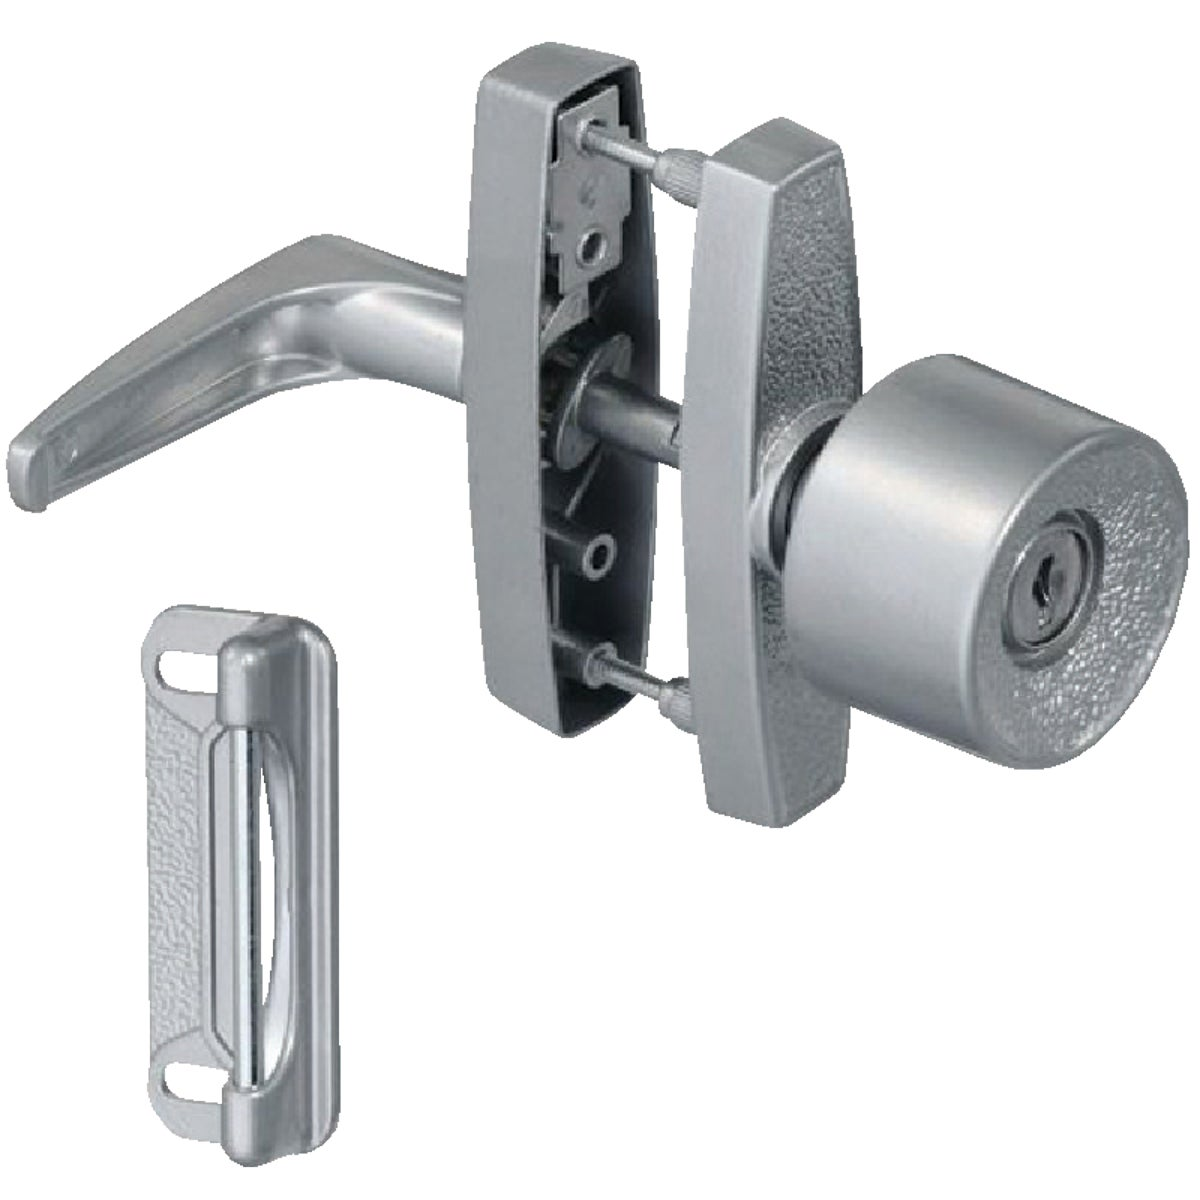 KEYED KNOB LATCH - VK670 by Hampton Prod Intl